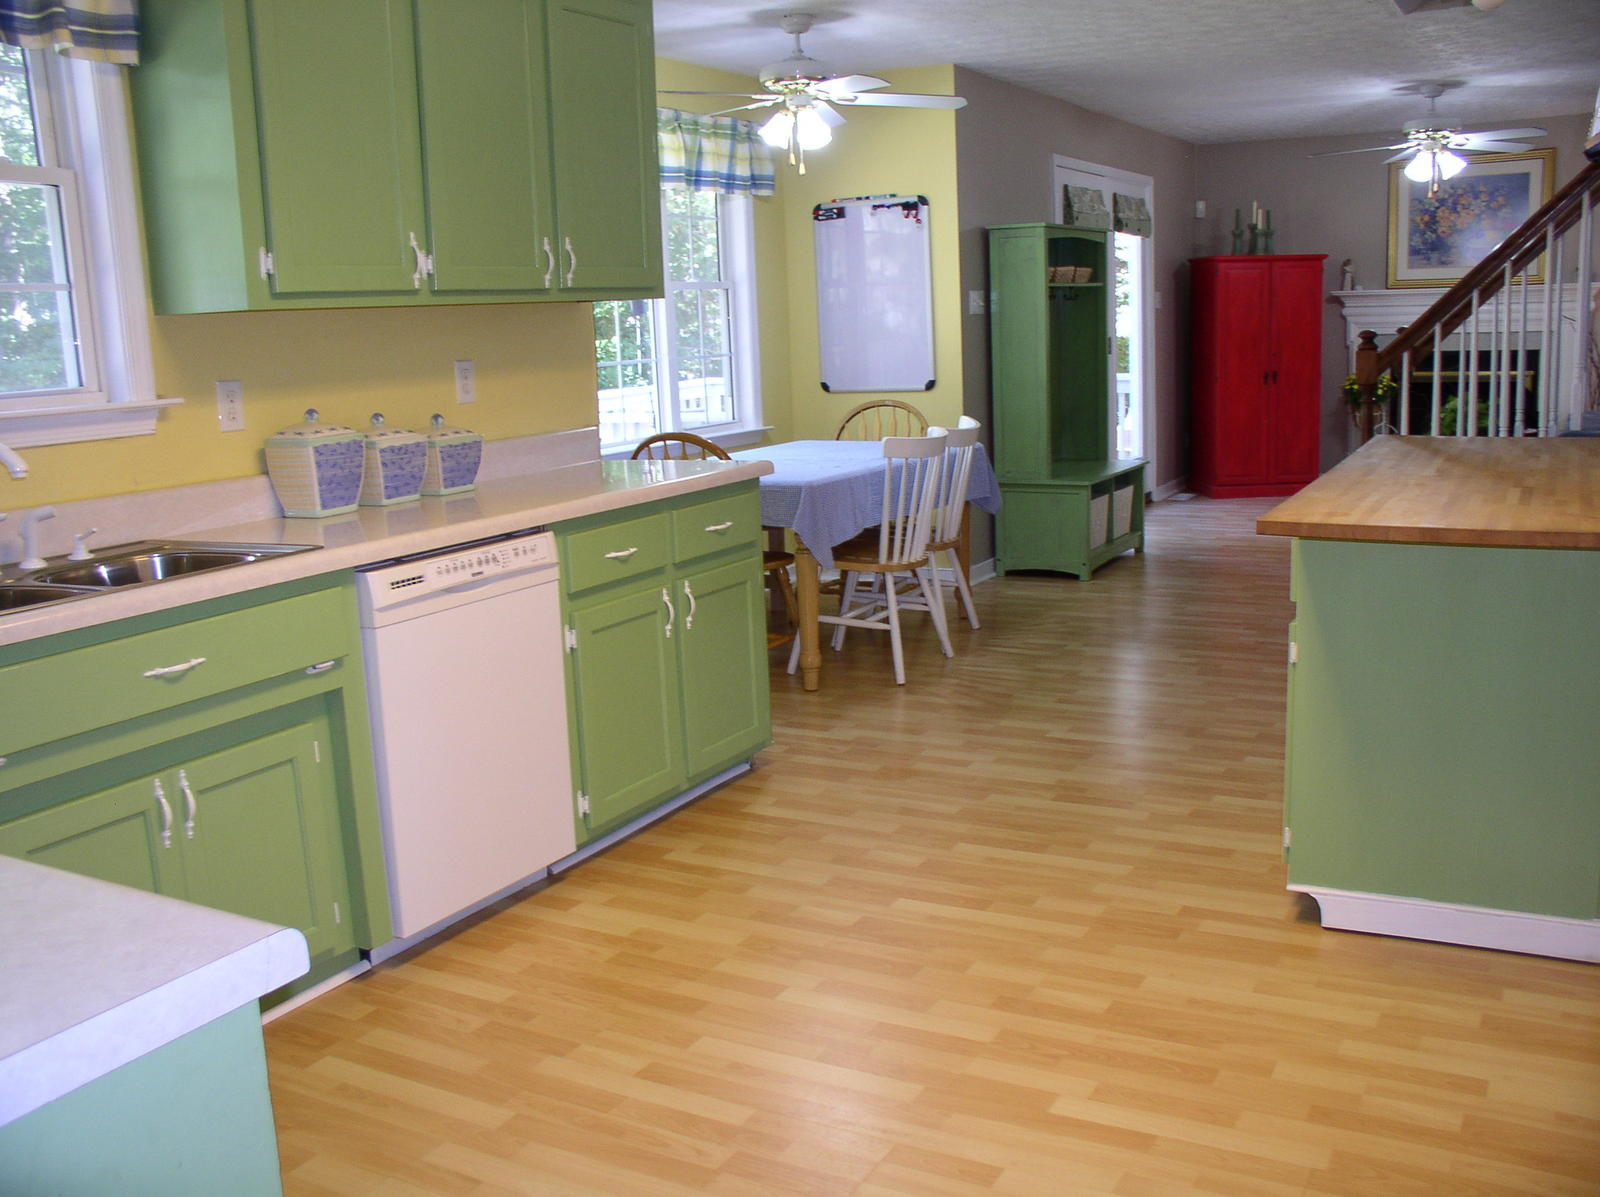 Does painting kitchen cabinets hurt resale appraise property rental advantage real - Images of kitchen paint colors ...